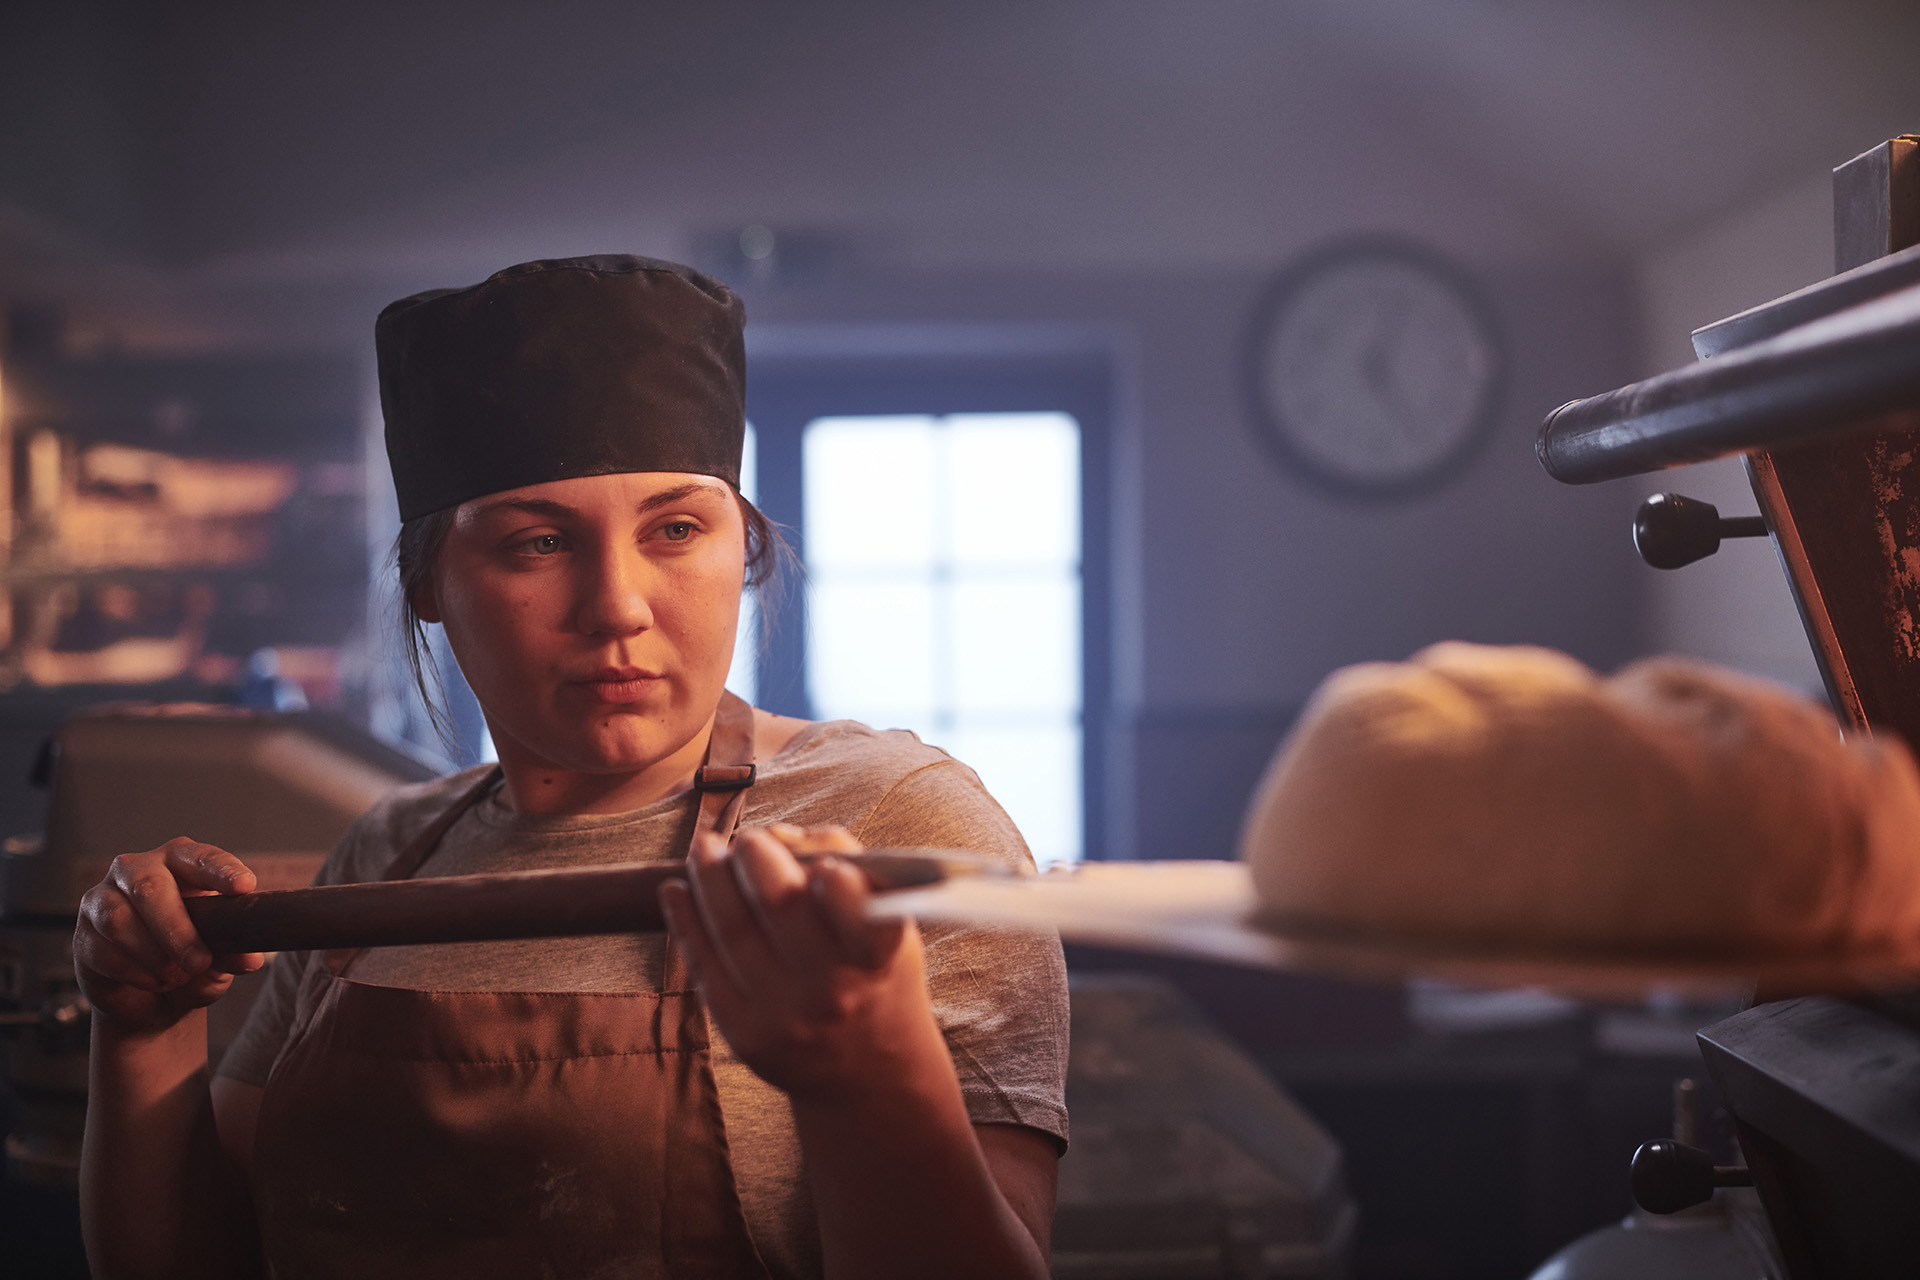 A baker removing bread from an oven